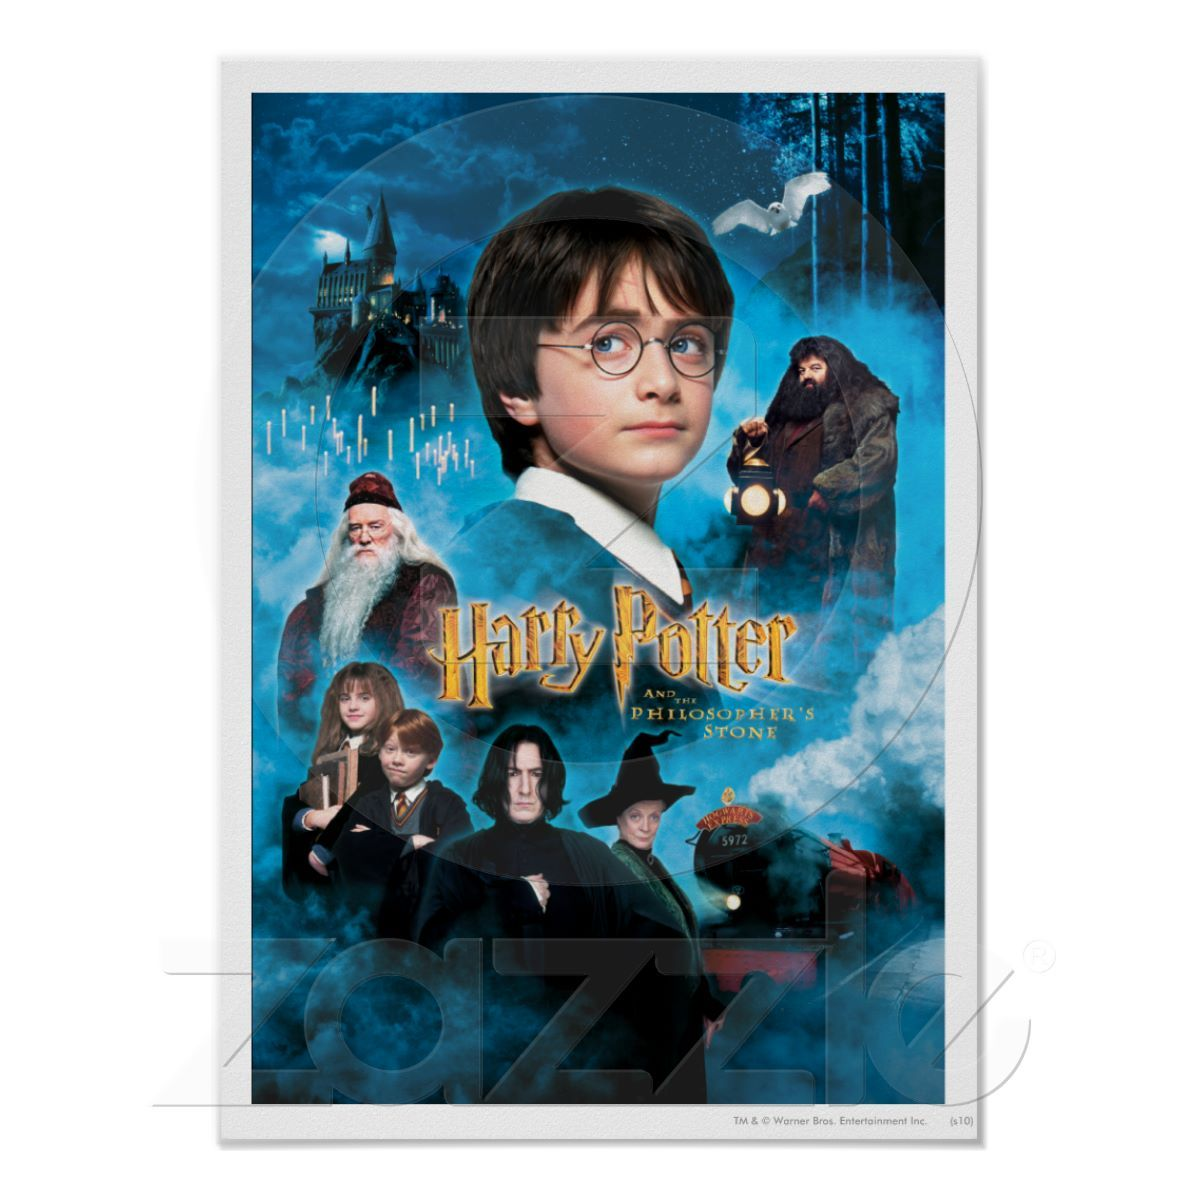 Philosopher S Stone Poster Zazzle Com In 2021 Harry Potter Movies Harry Potter Film Good Movies